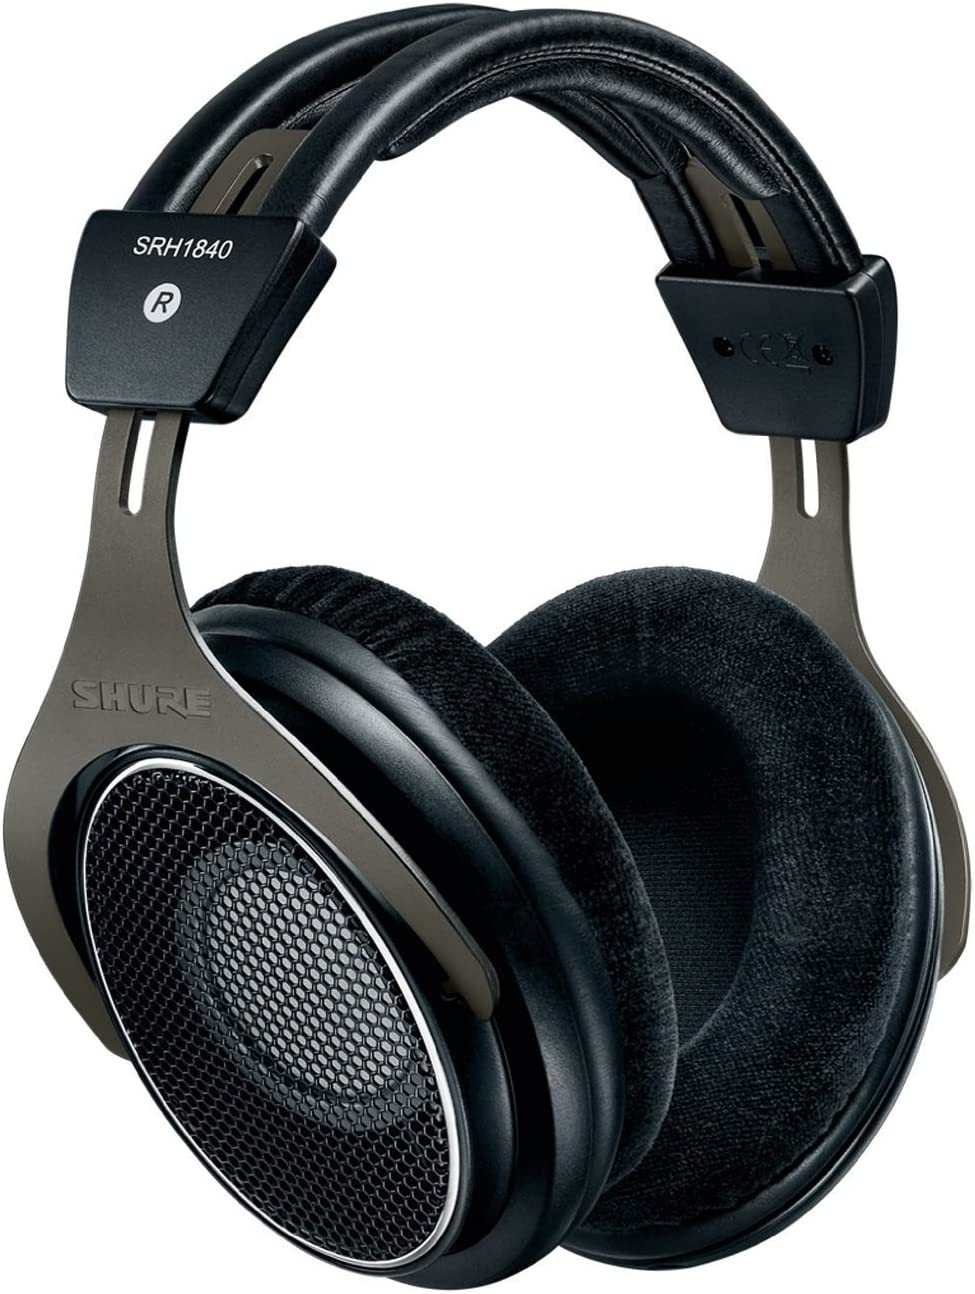 8 Best Headphones For Mixing And Mastering | Ultimate List 4